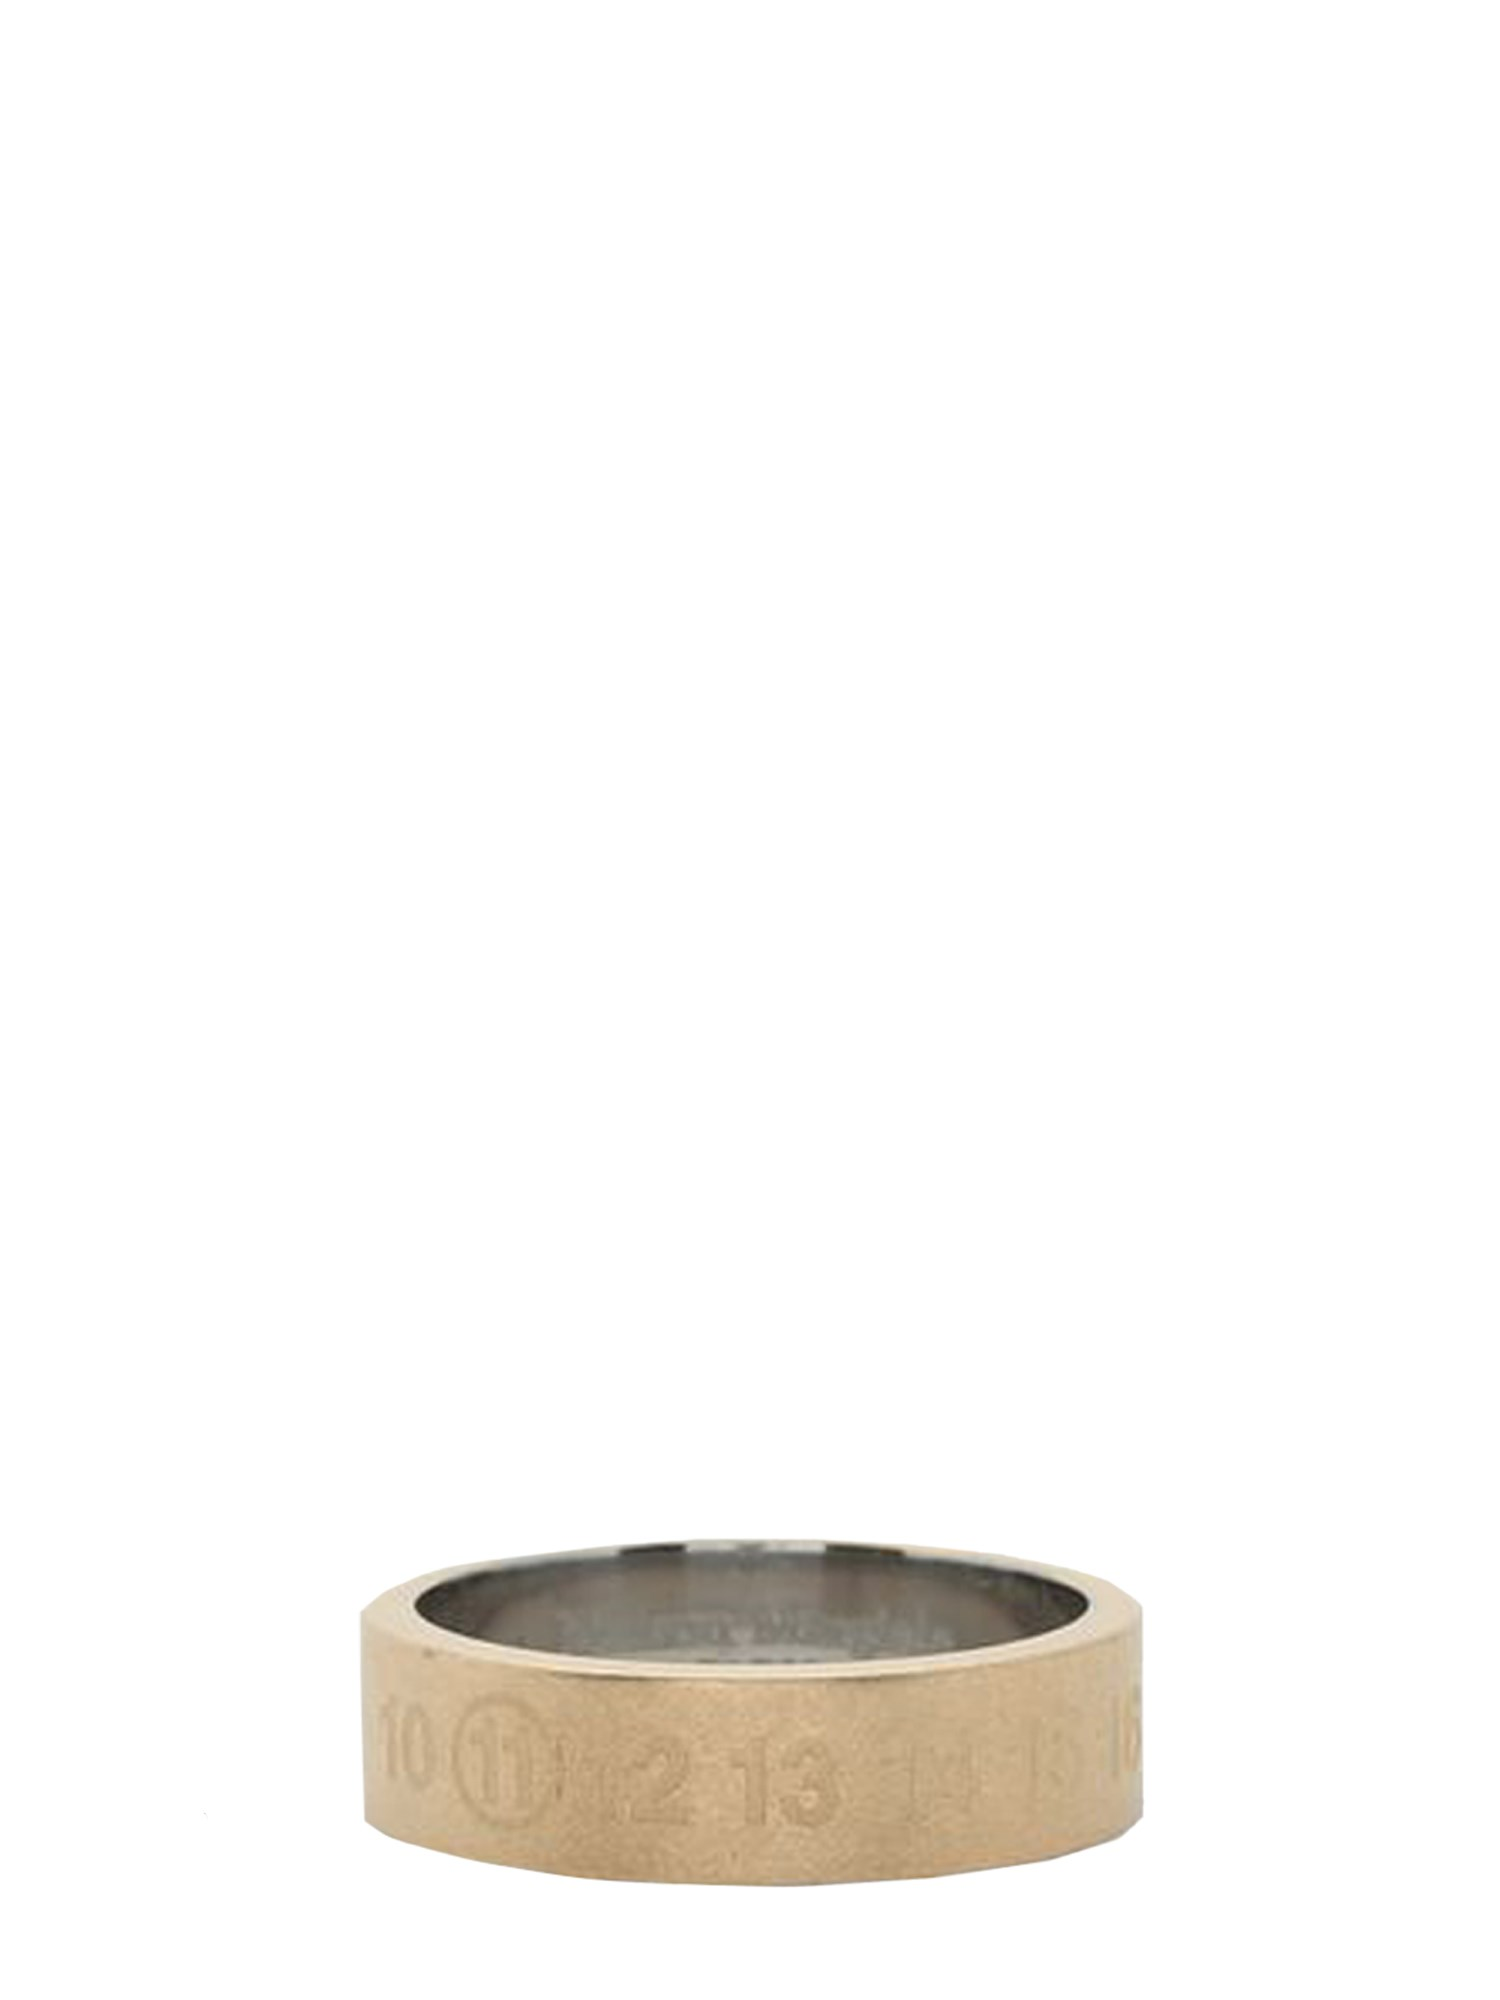 Maison Margiela Accessories RING WITH LOGO